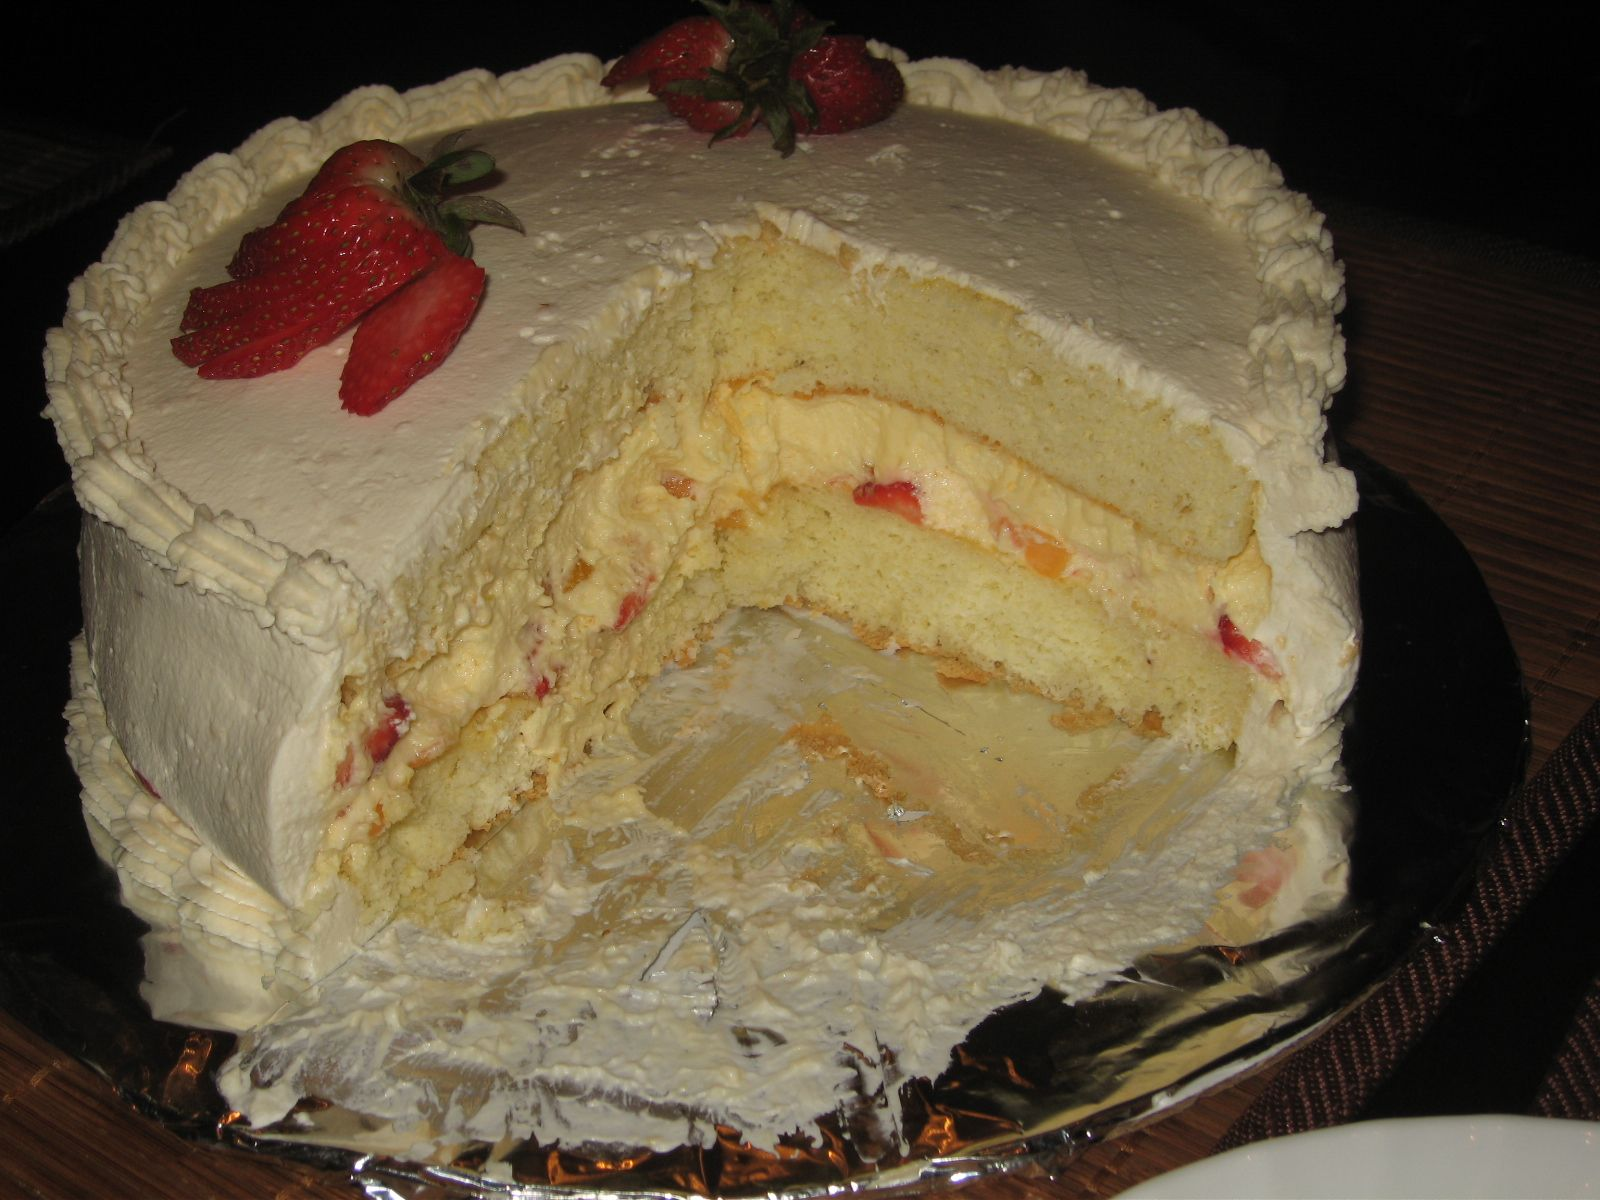 Chinese Style Sponge Cake with Fruit, Mousse, and Whipped ...